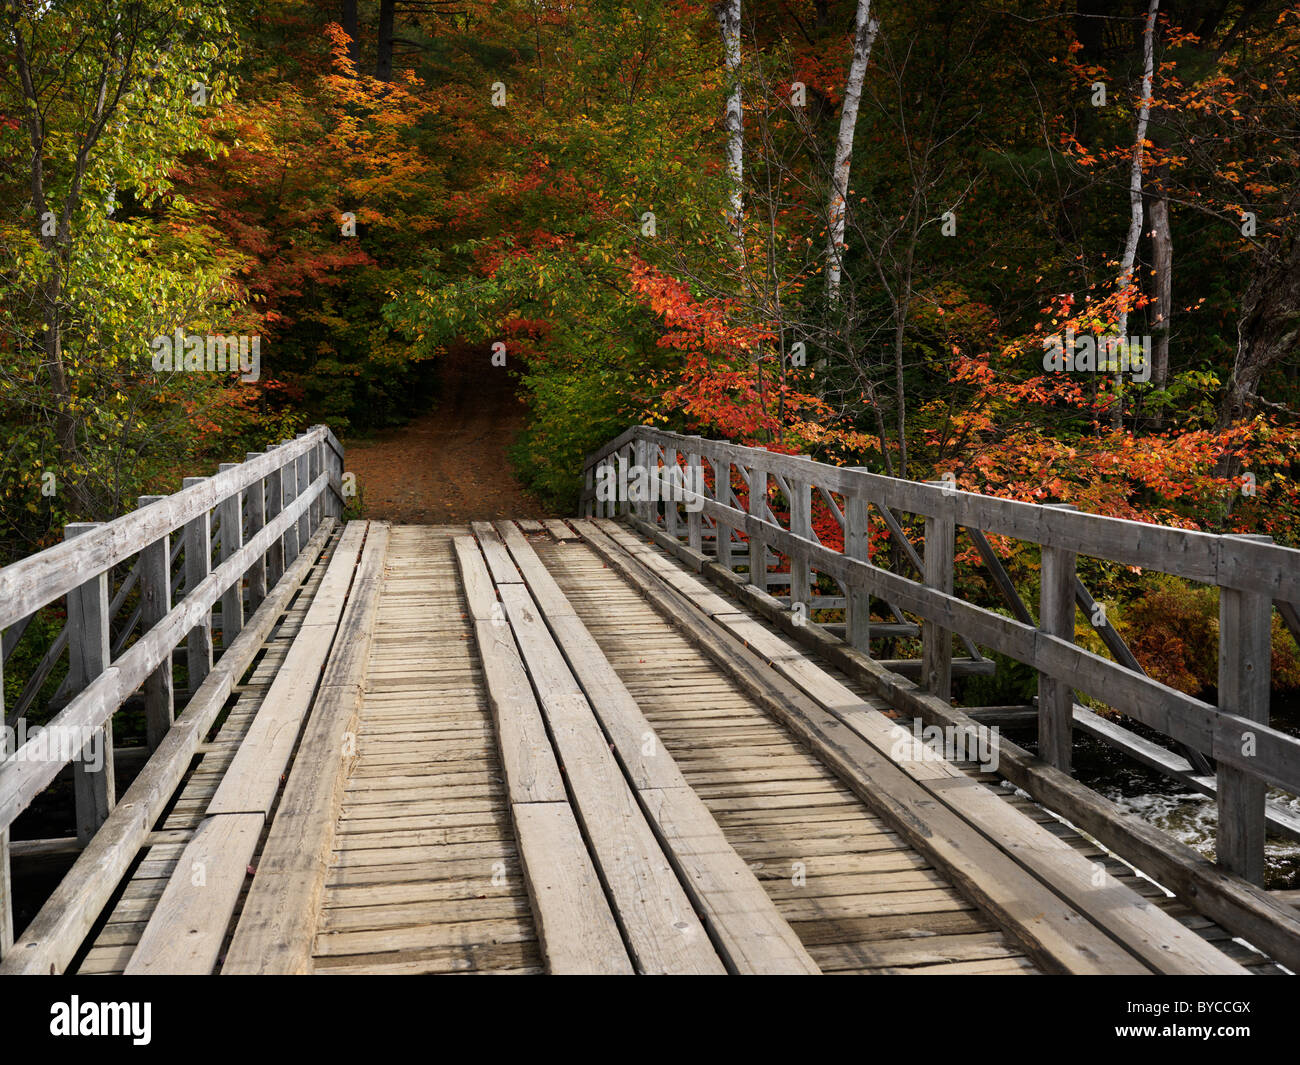 Wooden bridge over a river. Countryside fall nature scenery. Oxtongue river, Algonquin, Muskoka, Ontario, Canada. - Stock Image